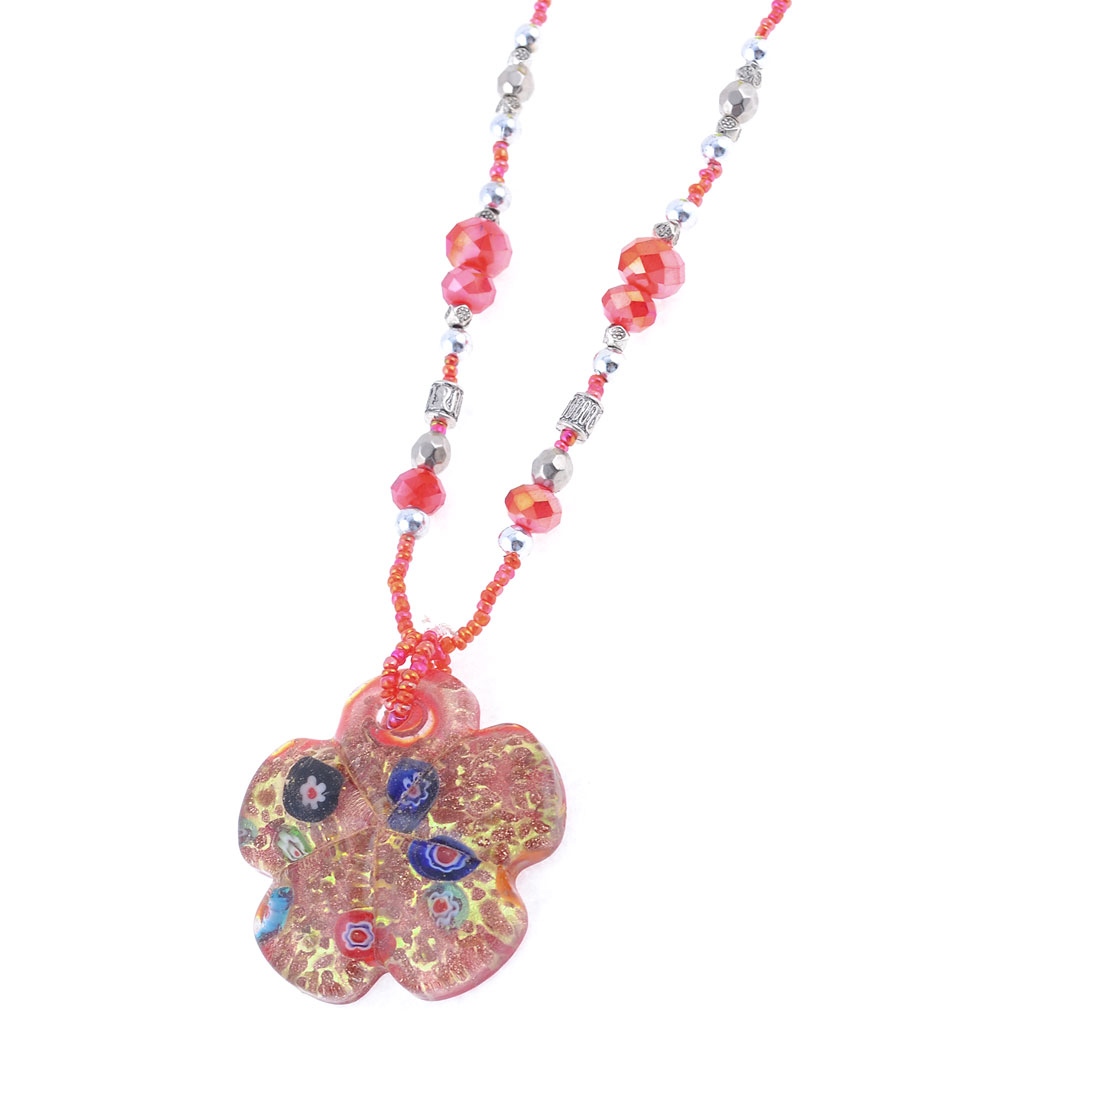 Glitter Powder Gold Tone Floral Glass Pendant Adjustable Necklace for Lady Woman